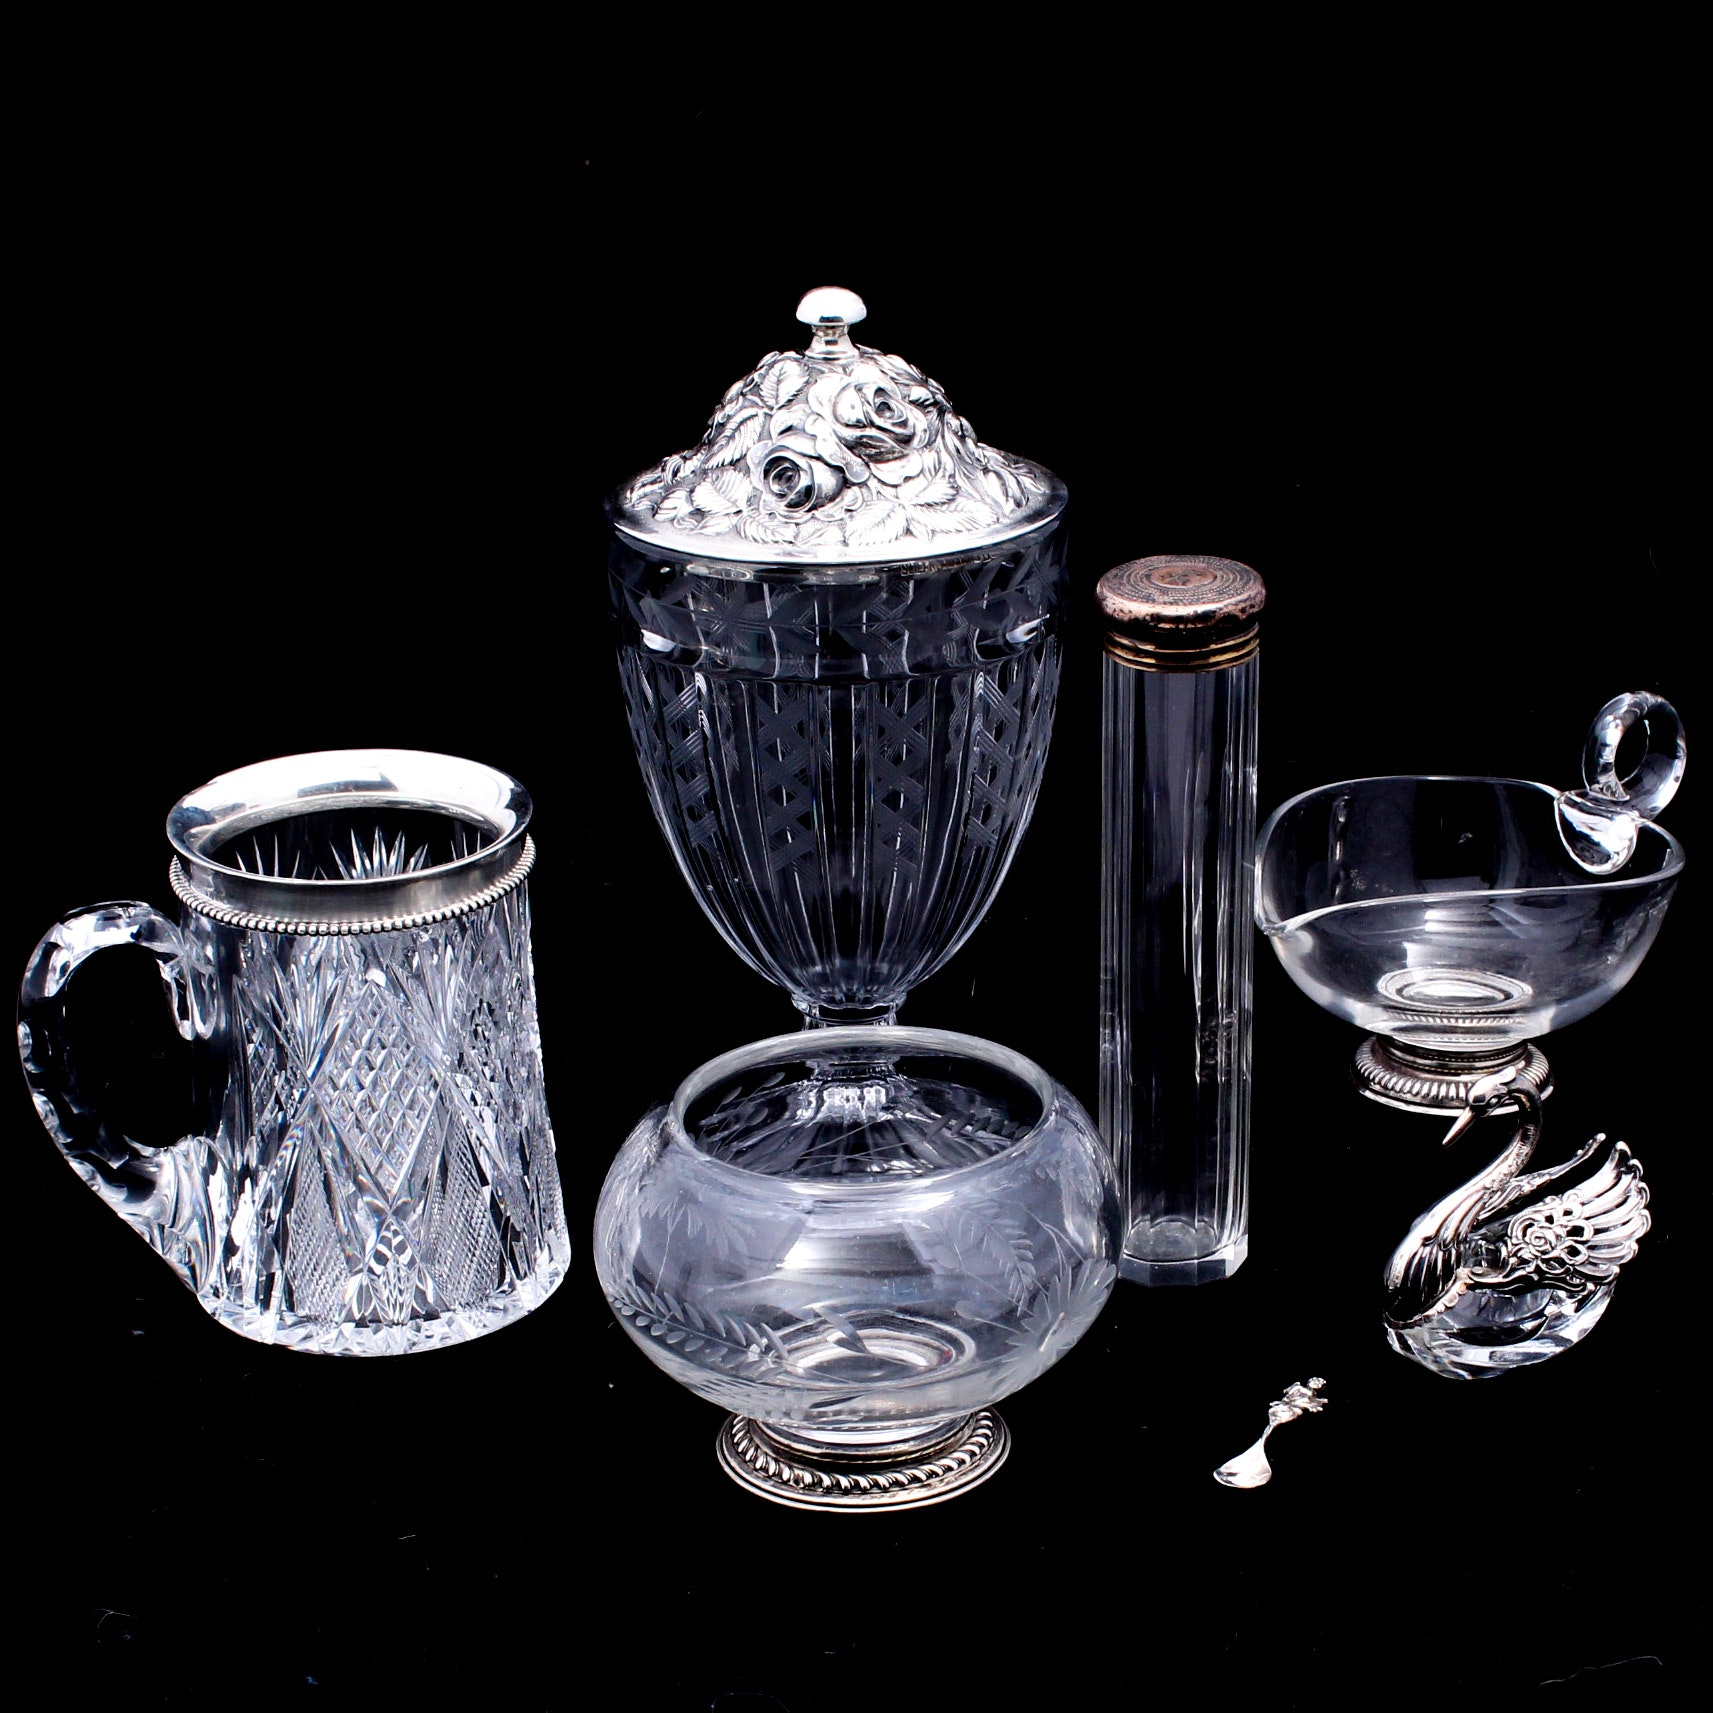 Glass Serveware with Sterling Featuring Heisey, Steiff, Whiting